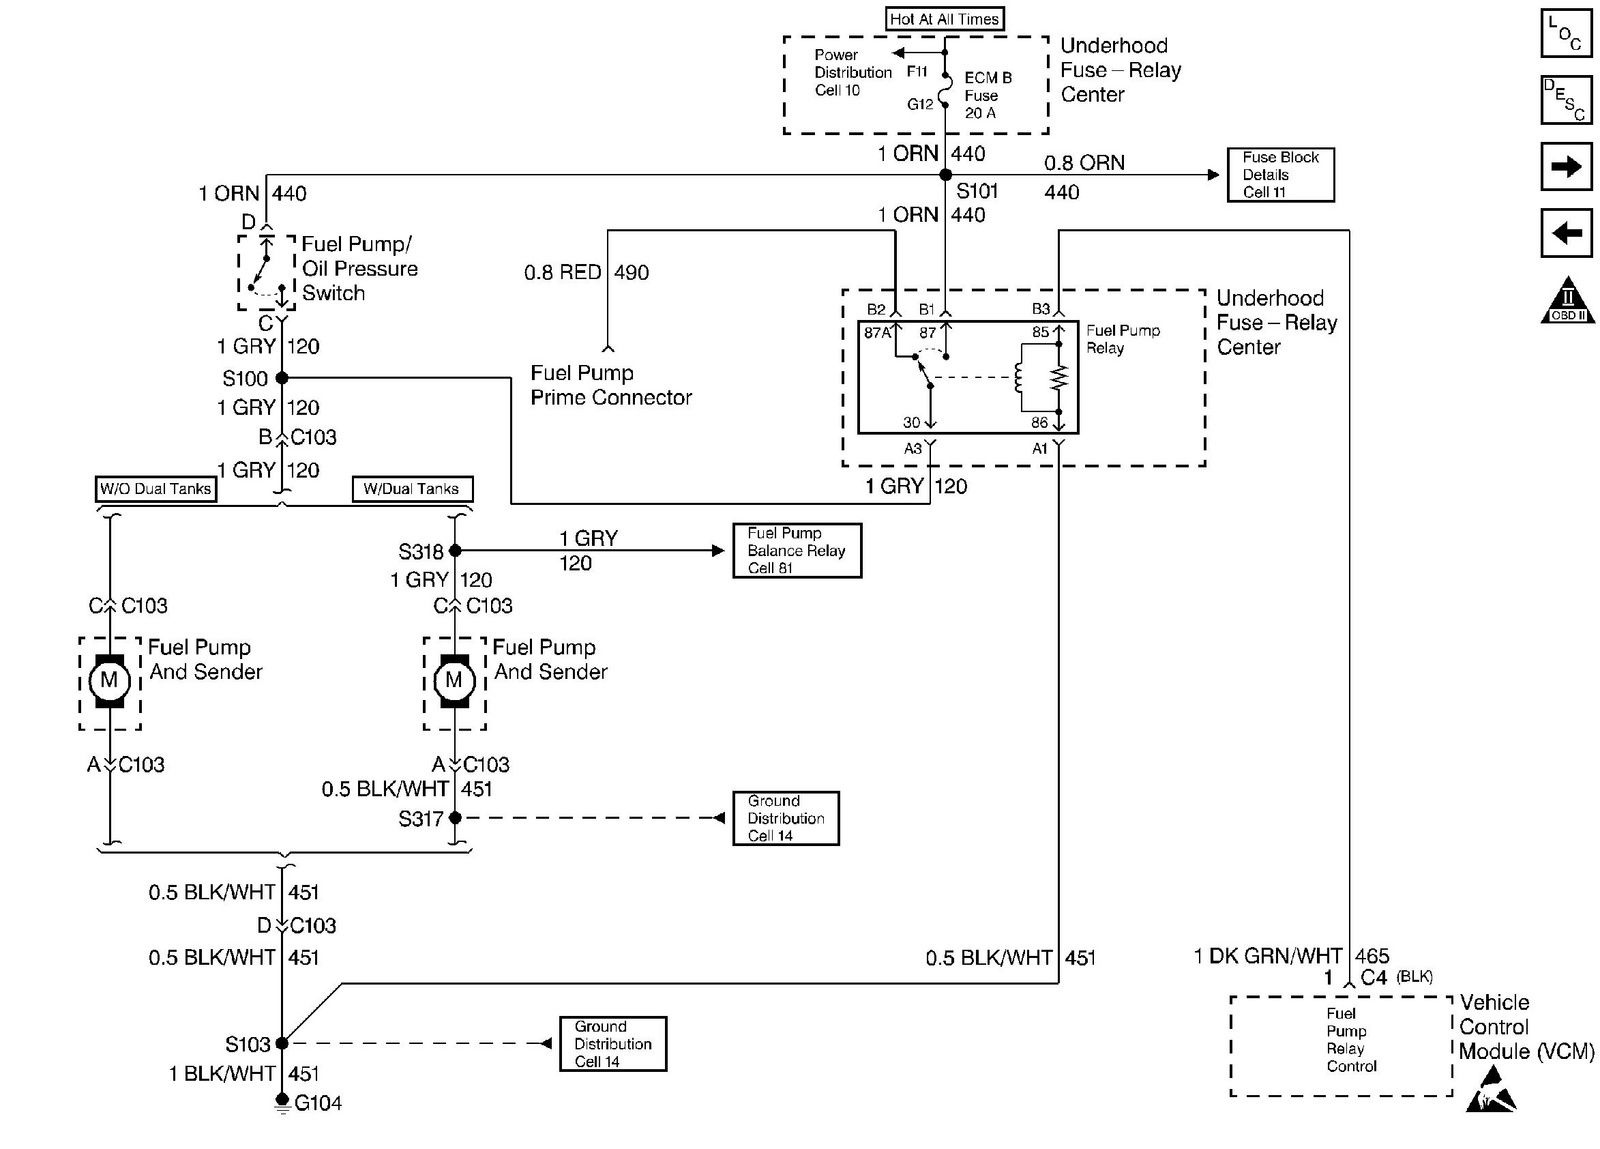 2004 Gmc Sierra Ignition Switch Wiring Diagram : Gmc sierra wiring diagram get free image about